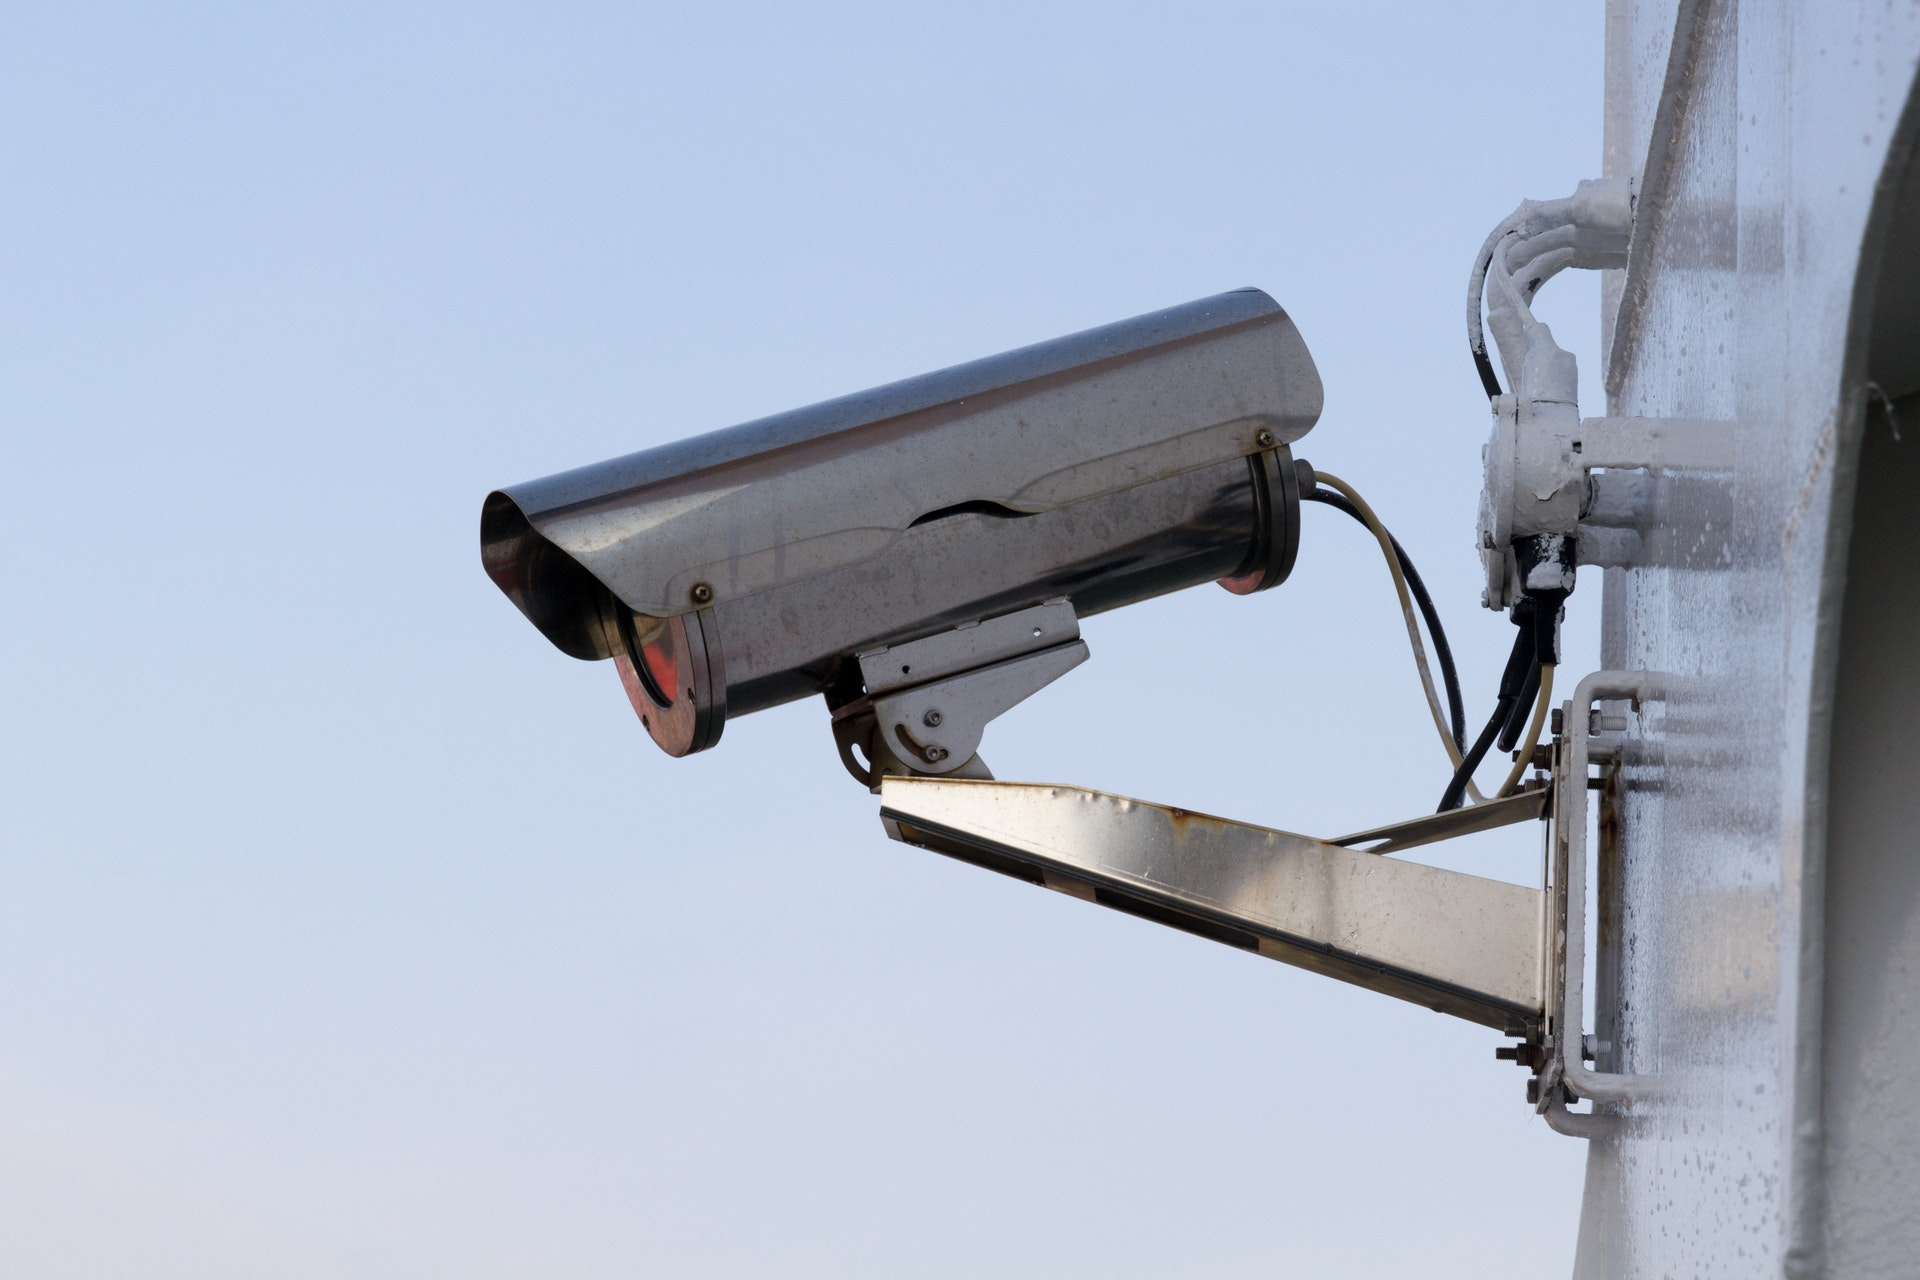 How to Prxotect Your Outdoor CCTV Cameras